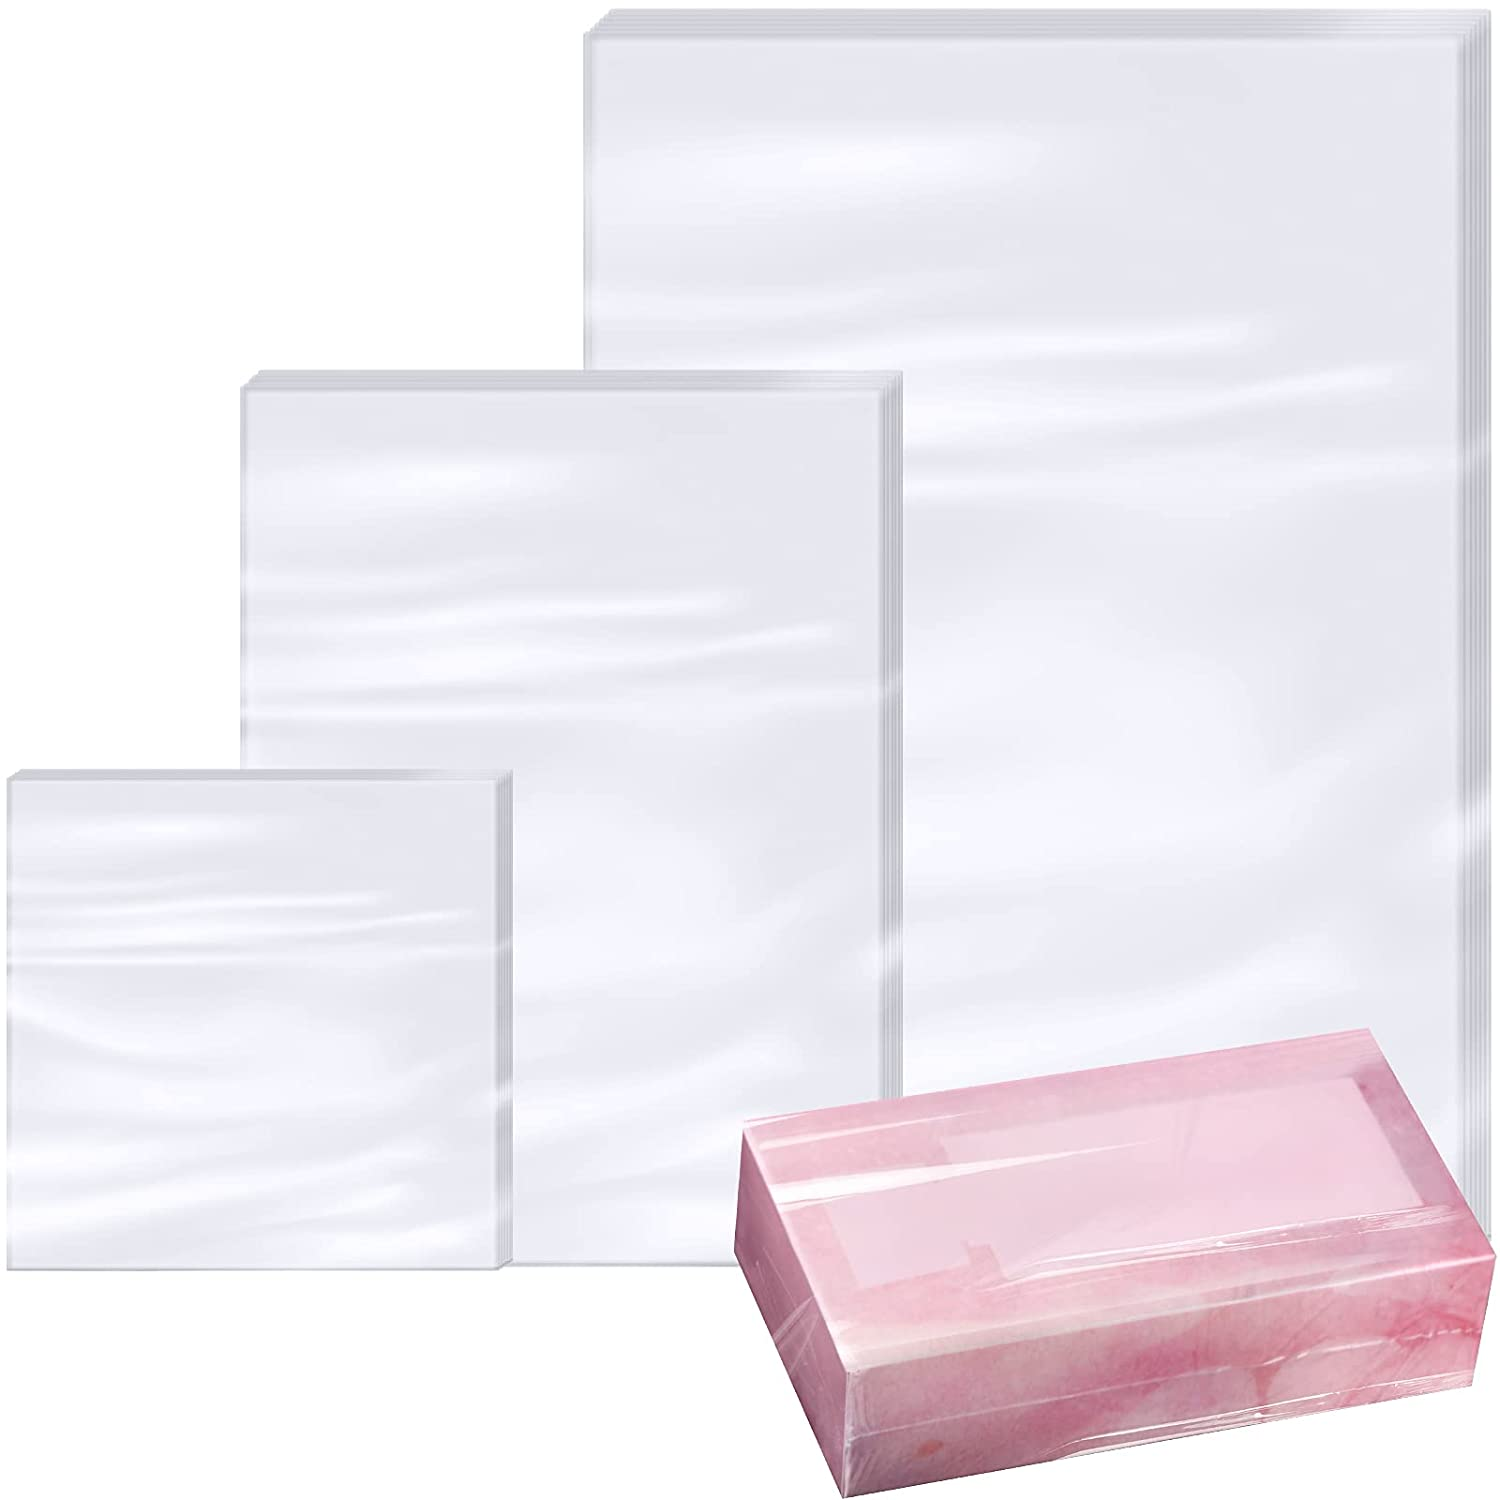 Max 45% OFF 300 Pieces Clear POF Shrink Wrap Sizes Max 56% OFF 3 Bags Heat Film Set